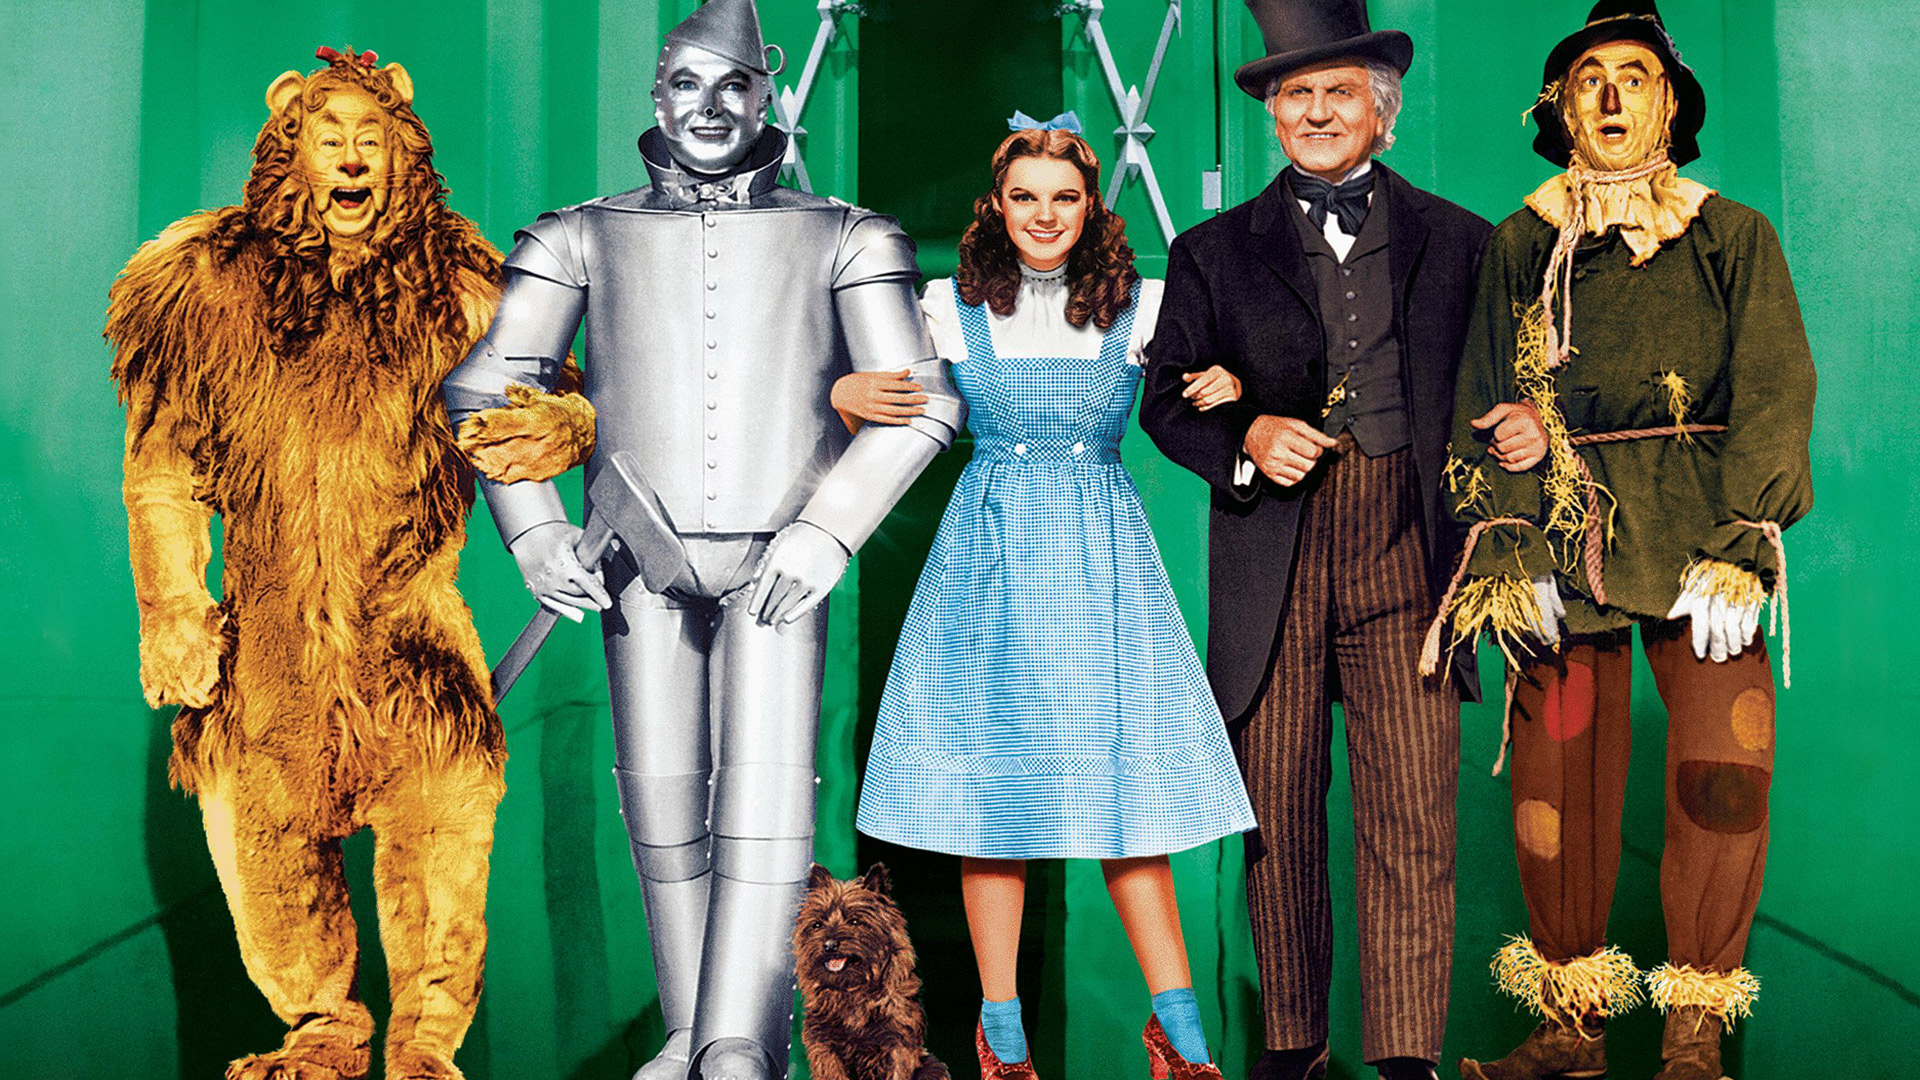 The wizard of oz wallpapers high quality download free - The wizard of oz hd ...